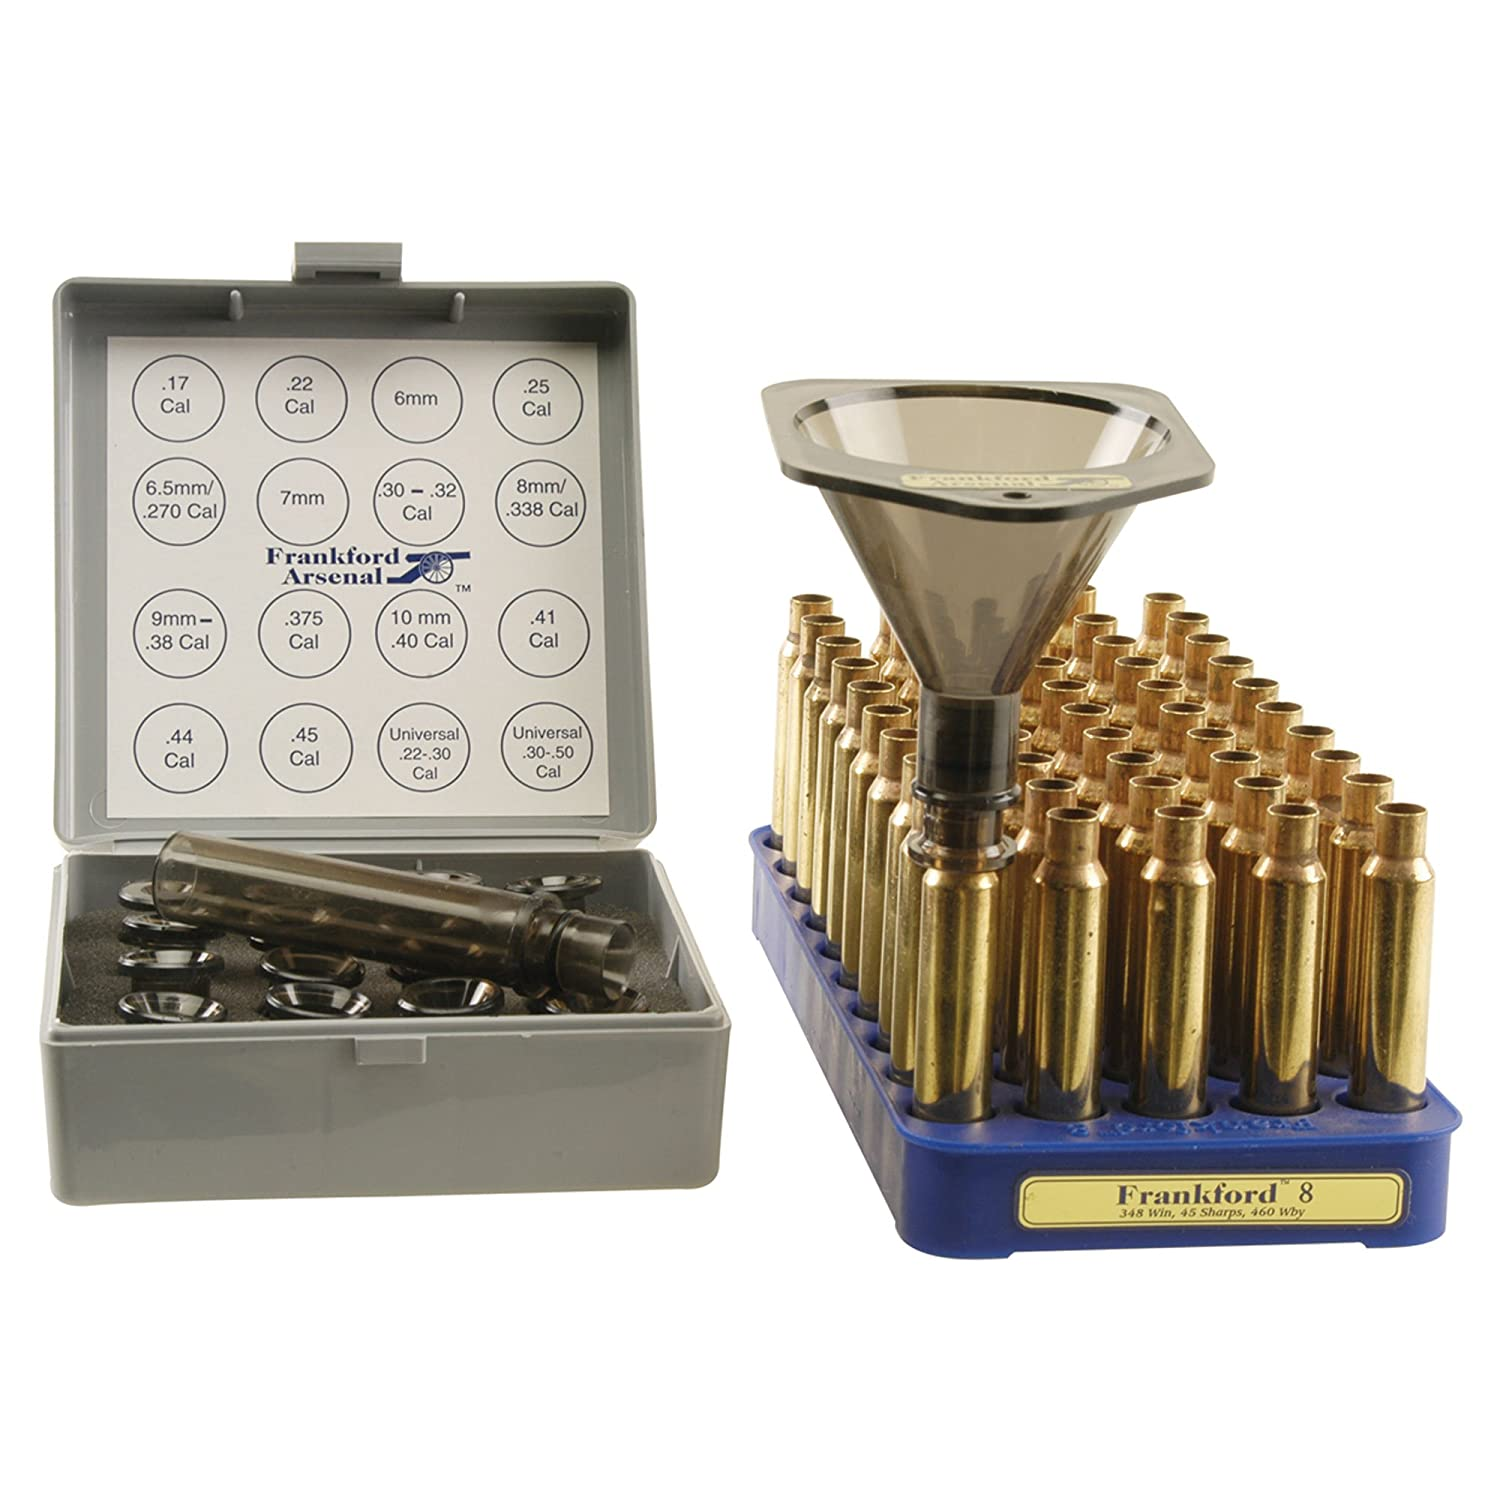 Frankford Arsenal Powder Funnel with 16 Quick-Change Nozzles and 4